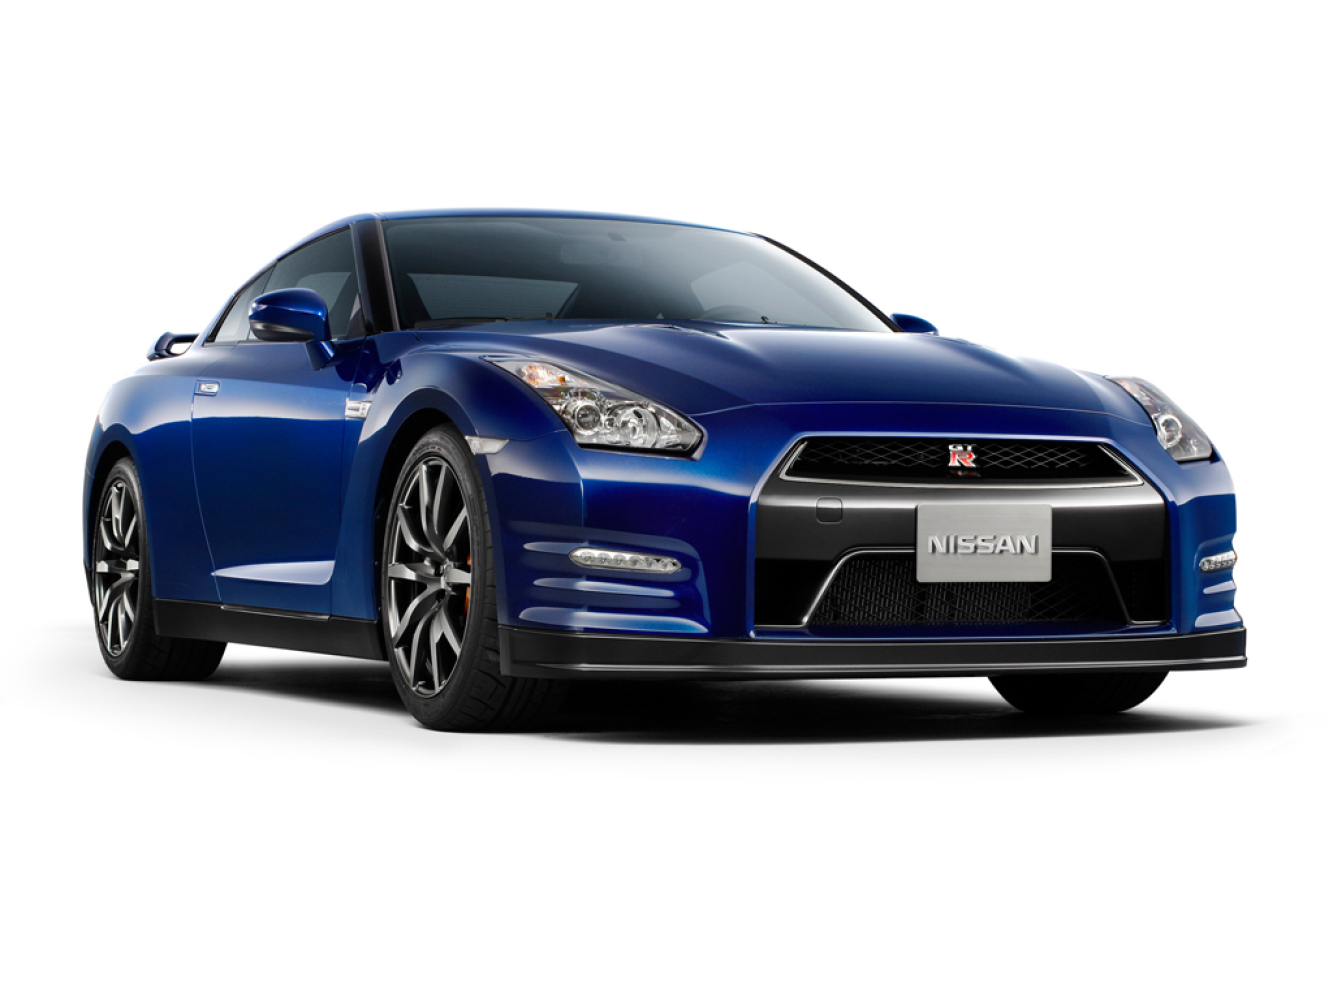 new nissan gt r 3 8 prestige 2dr auto petrol coupe for. Black Bedroom Furniture Sets. Home Design Ideas